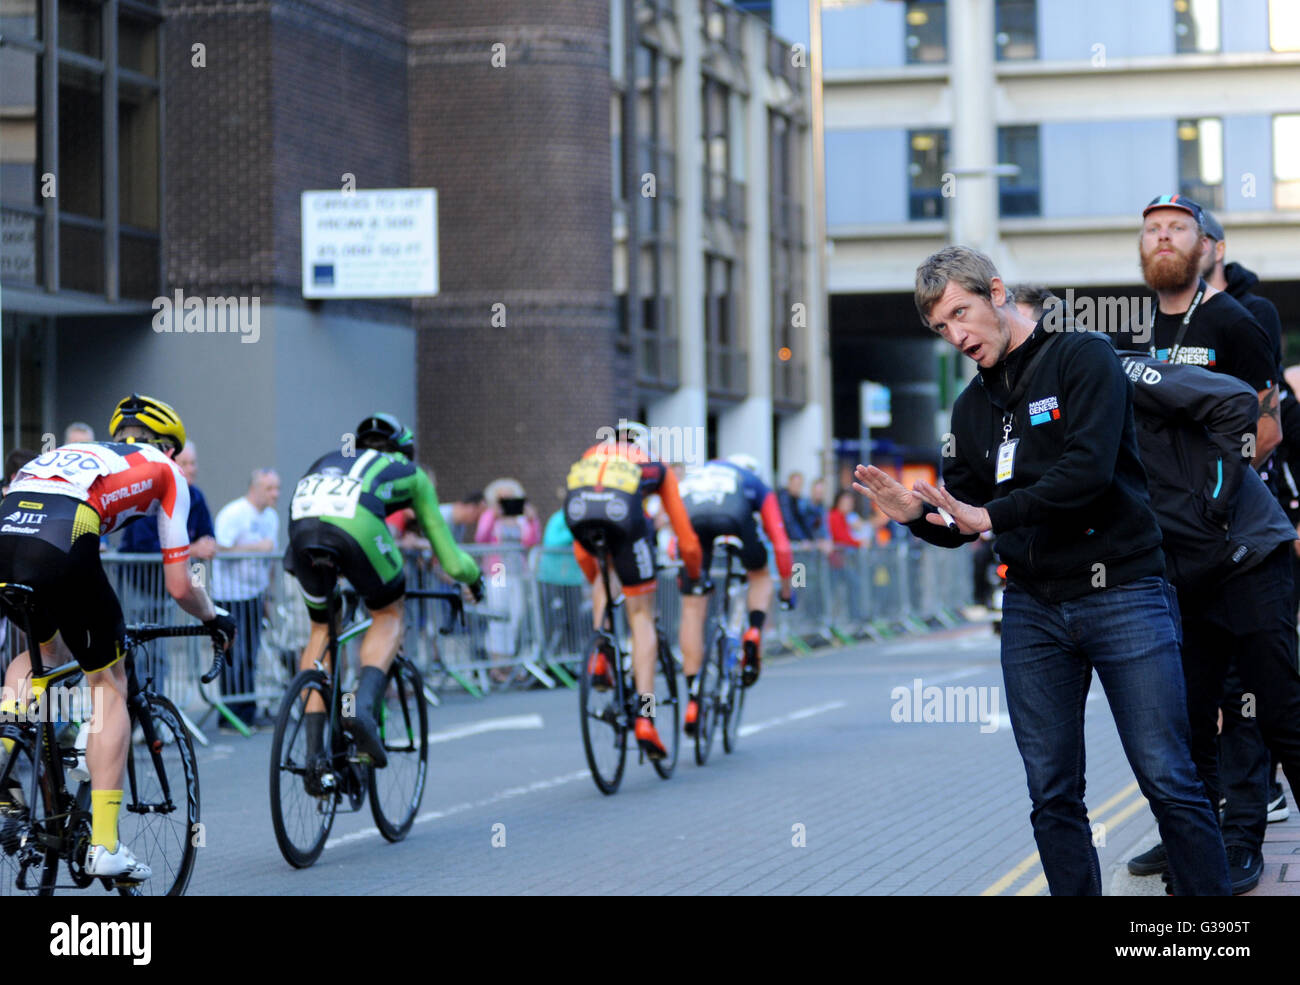 Portsmouth, Hampshire, UK, 9th June 2016. Pearl Izumi Tour Series Stage 10. Riders from the Madison - Genesis Team Stock Photo